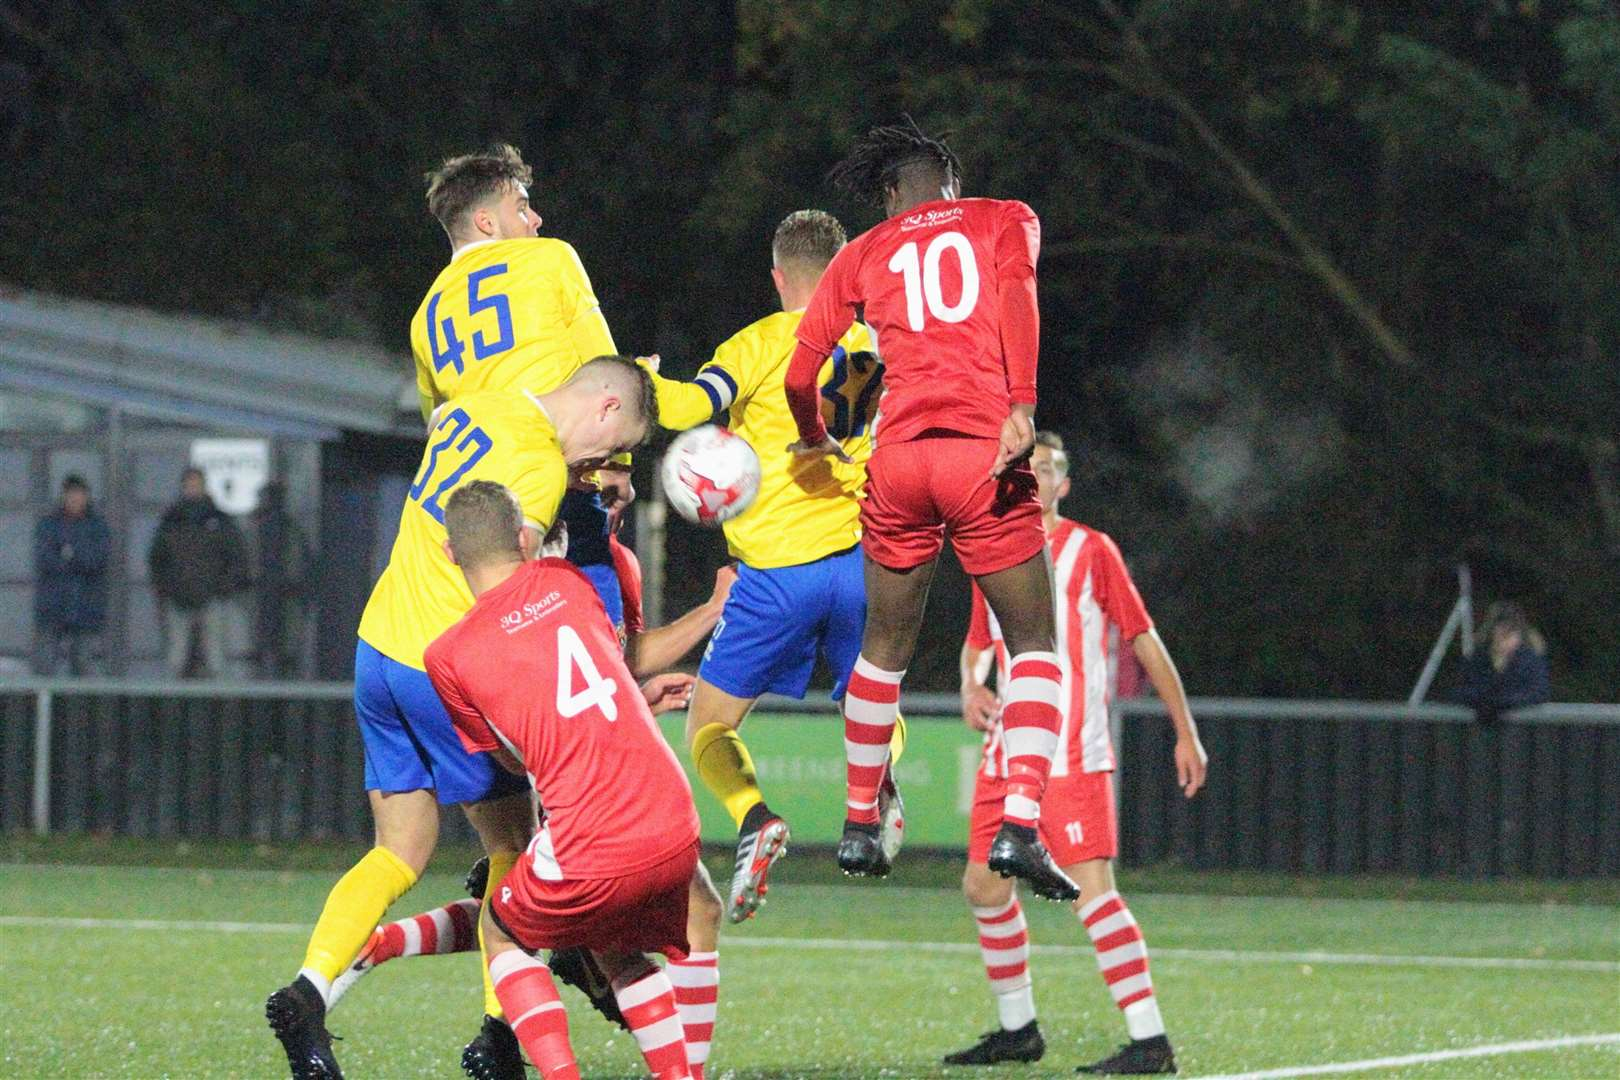 AFC Sudbury U18s v Bowers & Pitsea - Freddie King heads in the winning goal in the FA Youth Cup first round proper tie Picture: Clive Pearson (20479690)